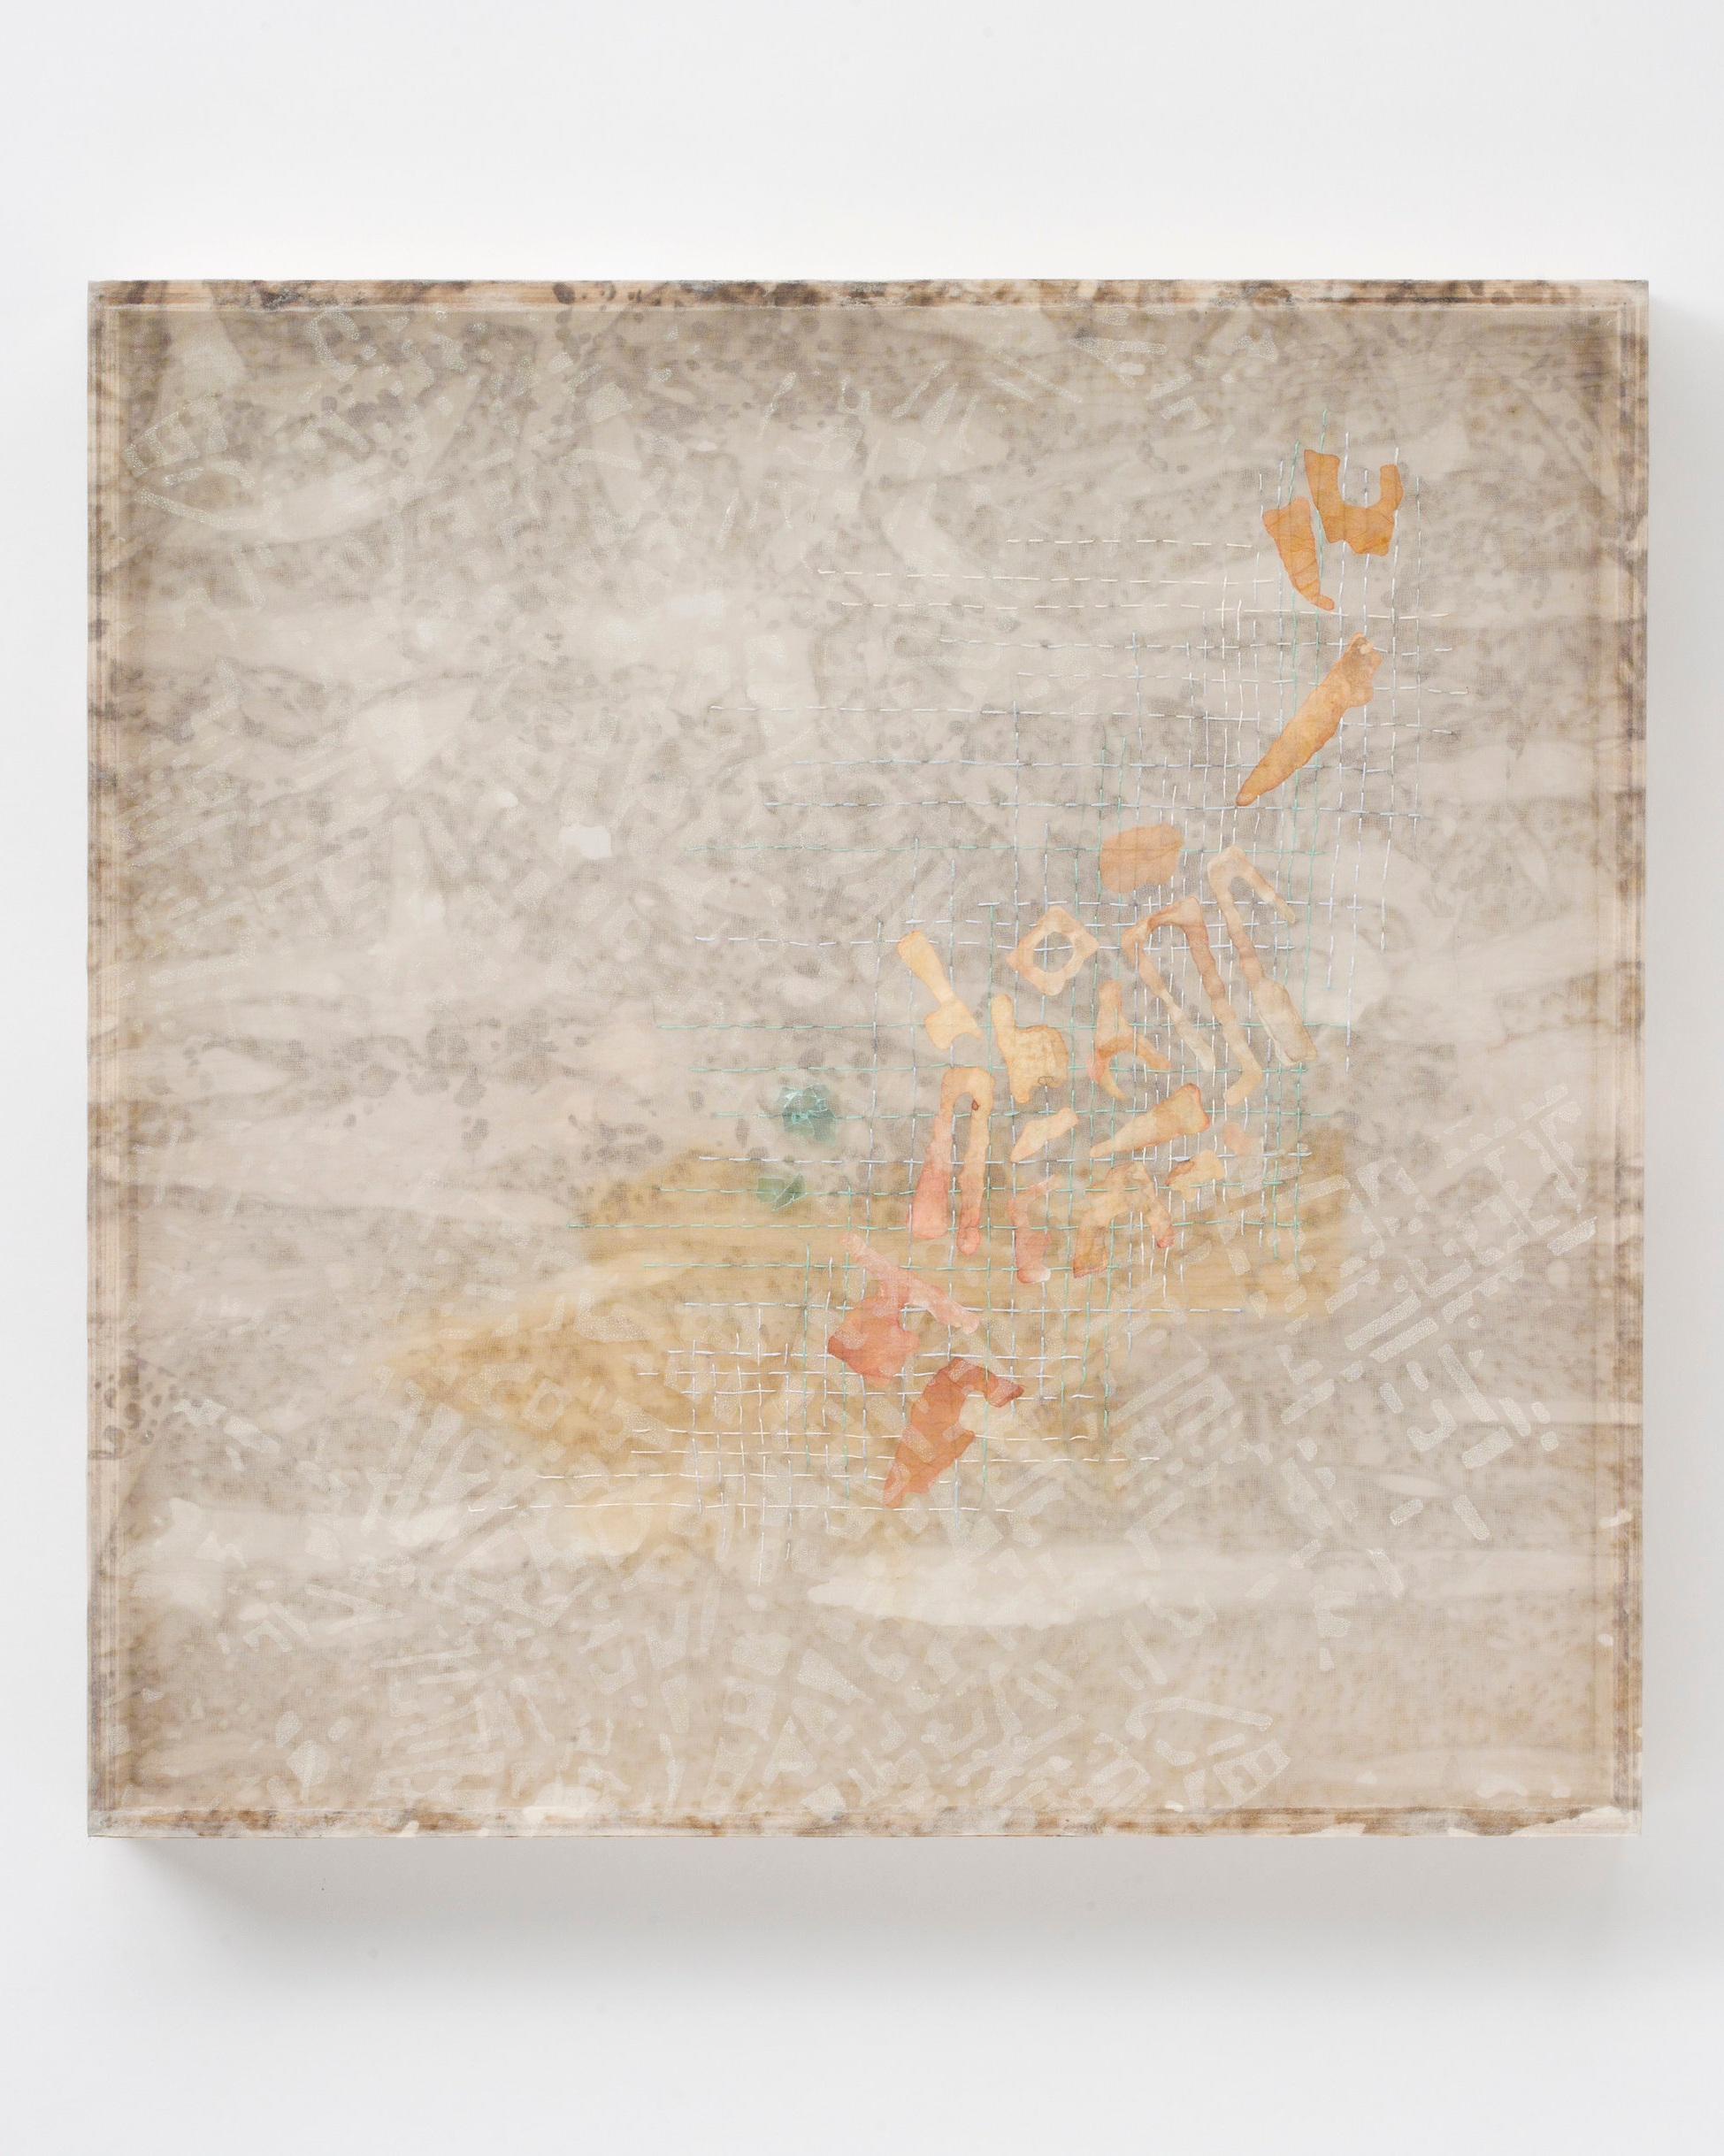 Victoria May   Haussmannization reexamined , 2016 stained silk, screen printed polyester, ink on kozo, thread, wood 18 x 18 x 2 inches; 45.7 x 45.7 x 5.1 centimeters